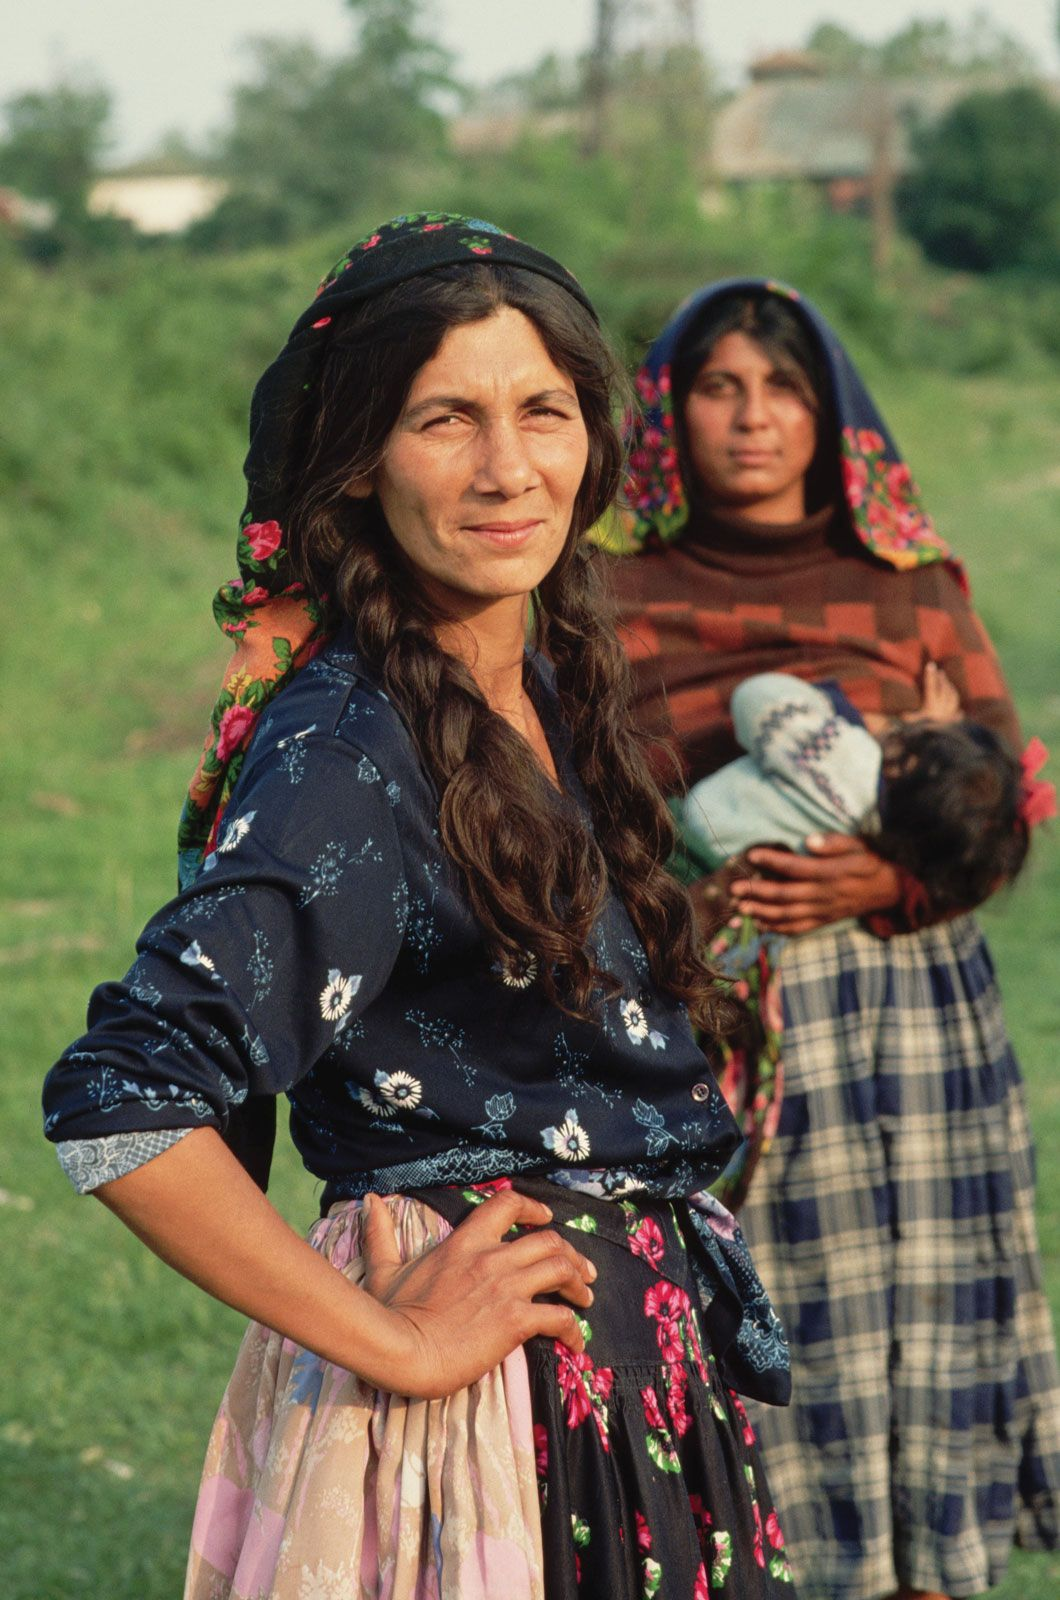 dating a gypsy woman Gypsy women - if you are single and lonely, then this dating site is right for you because all the members are single and looking for relationship.